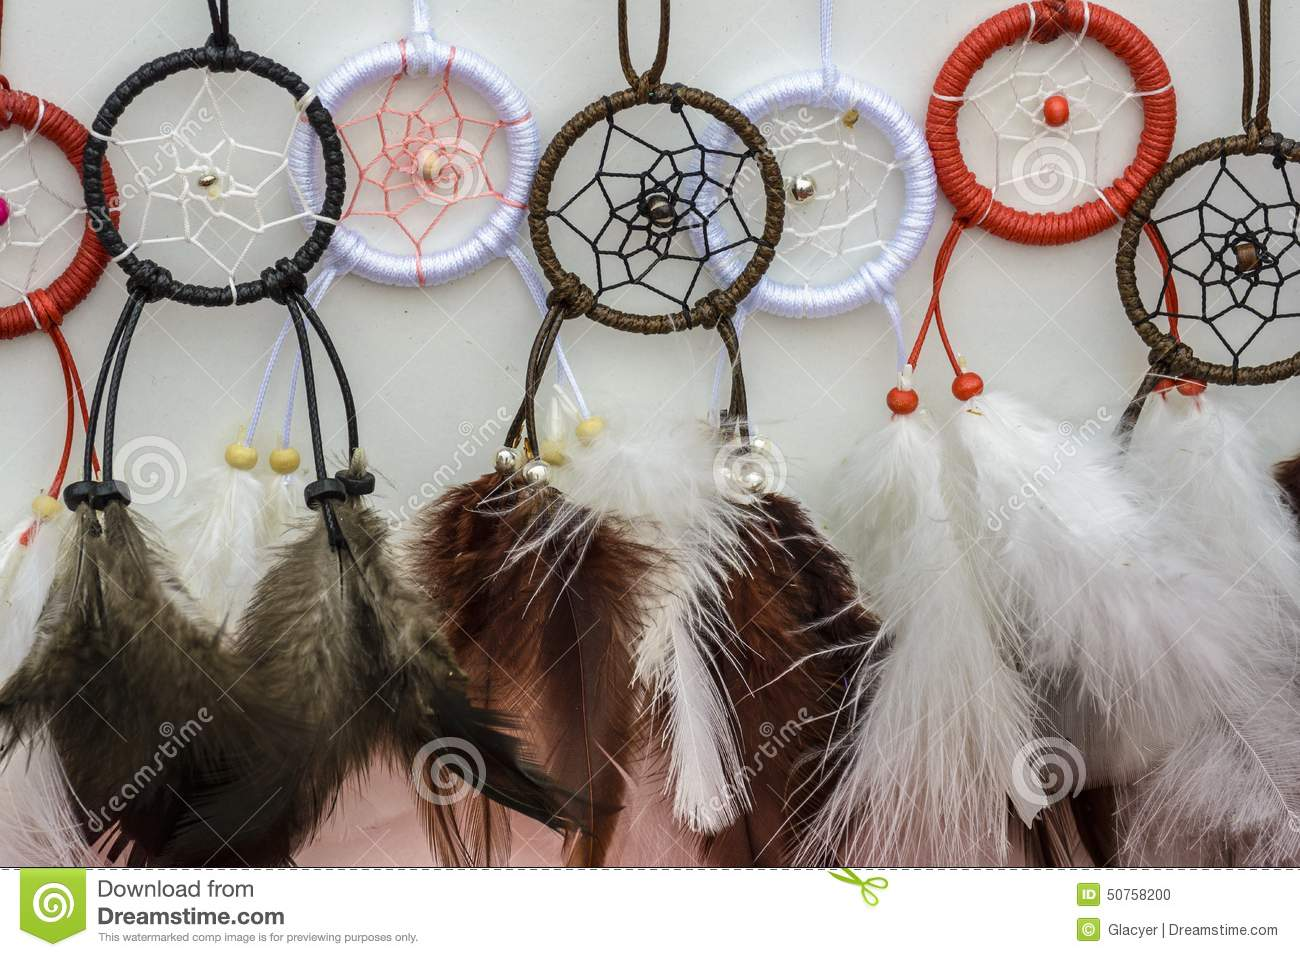 Indian Dream Catchers For Sale Dream catcher stock photo Image of detail design america 40 29